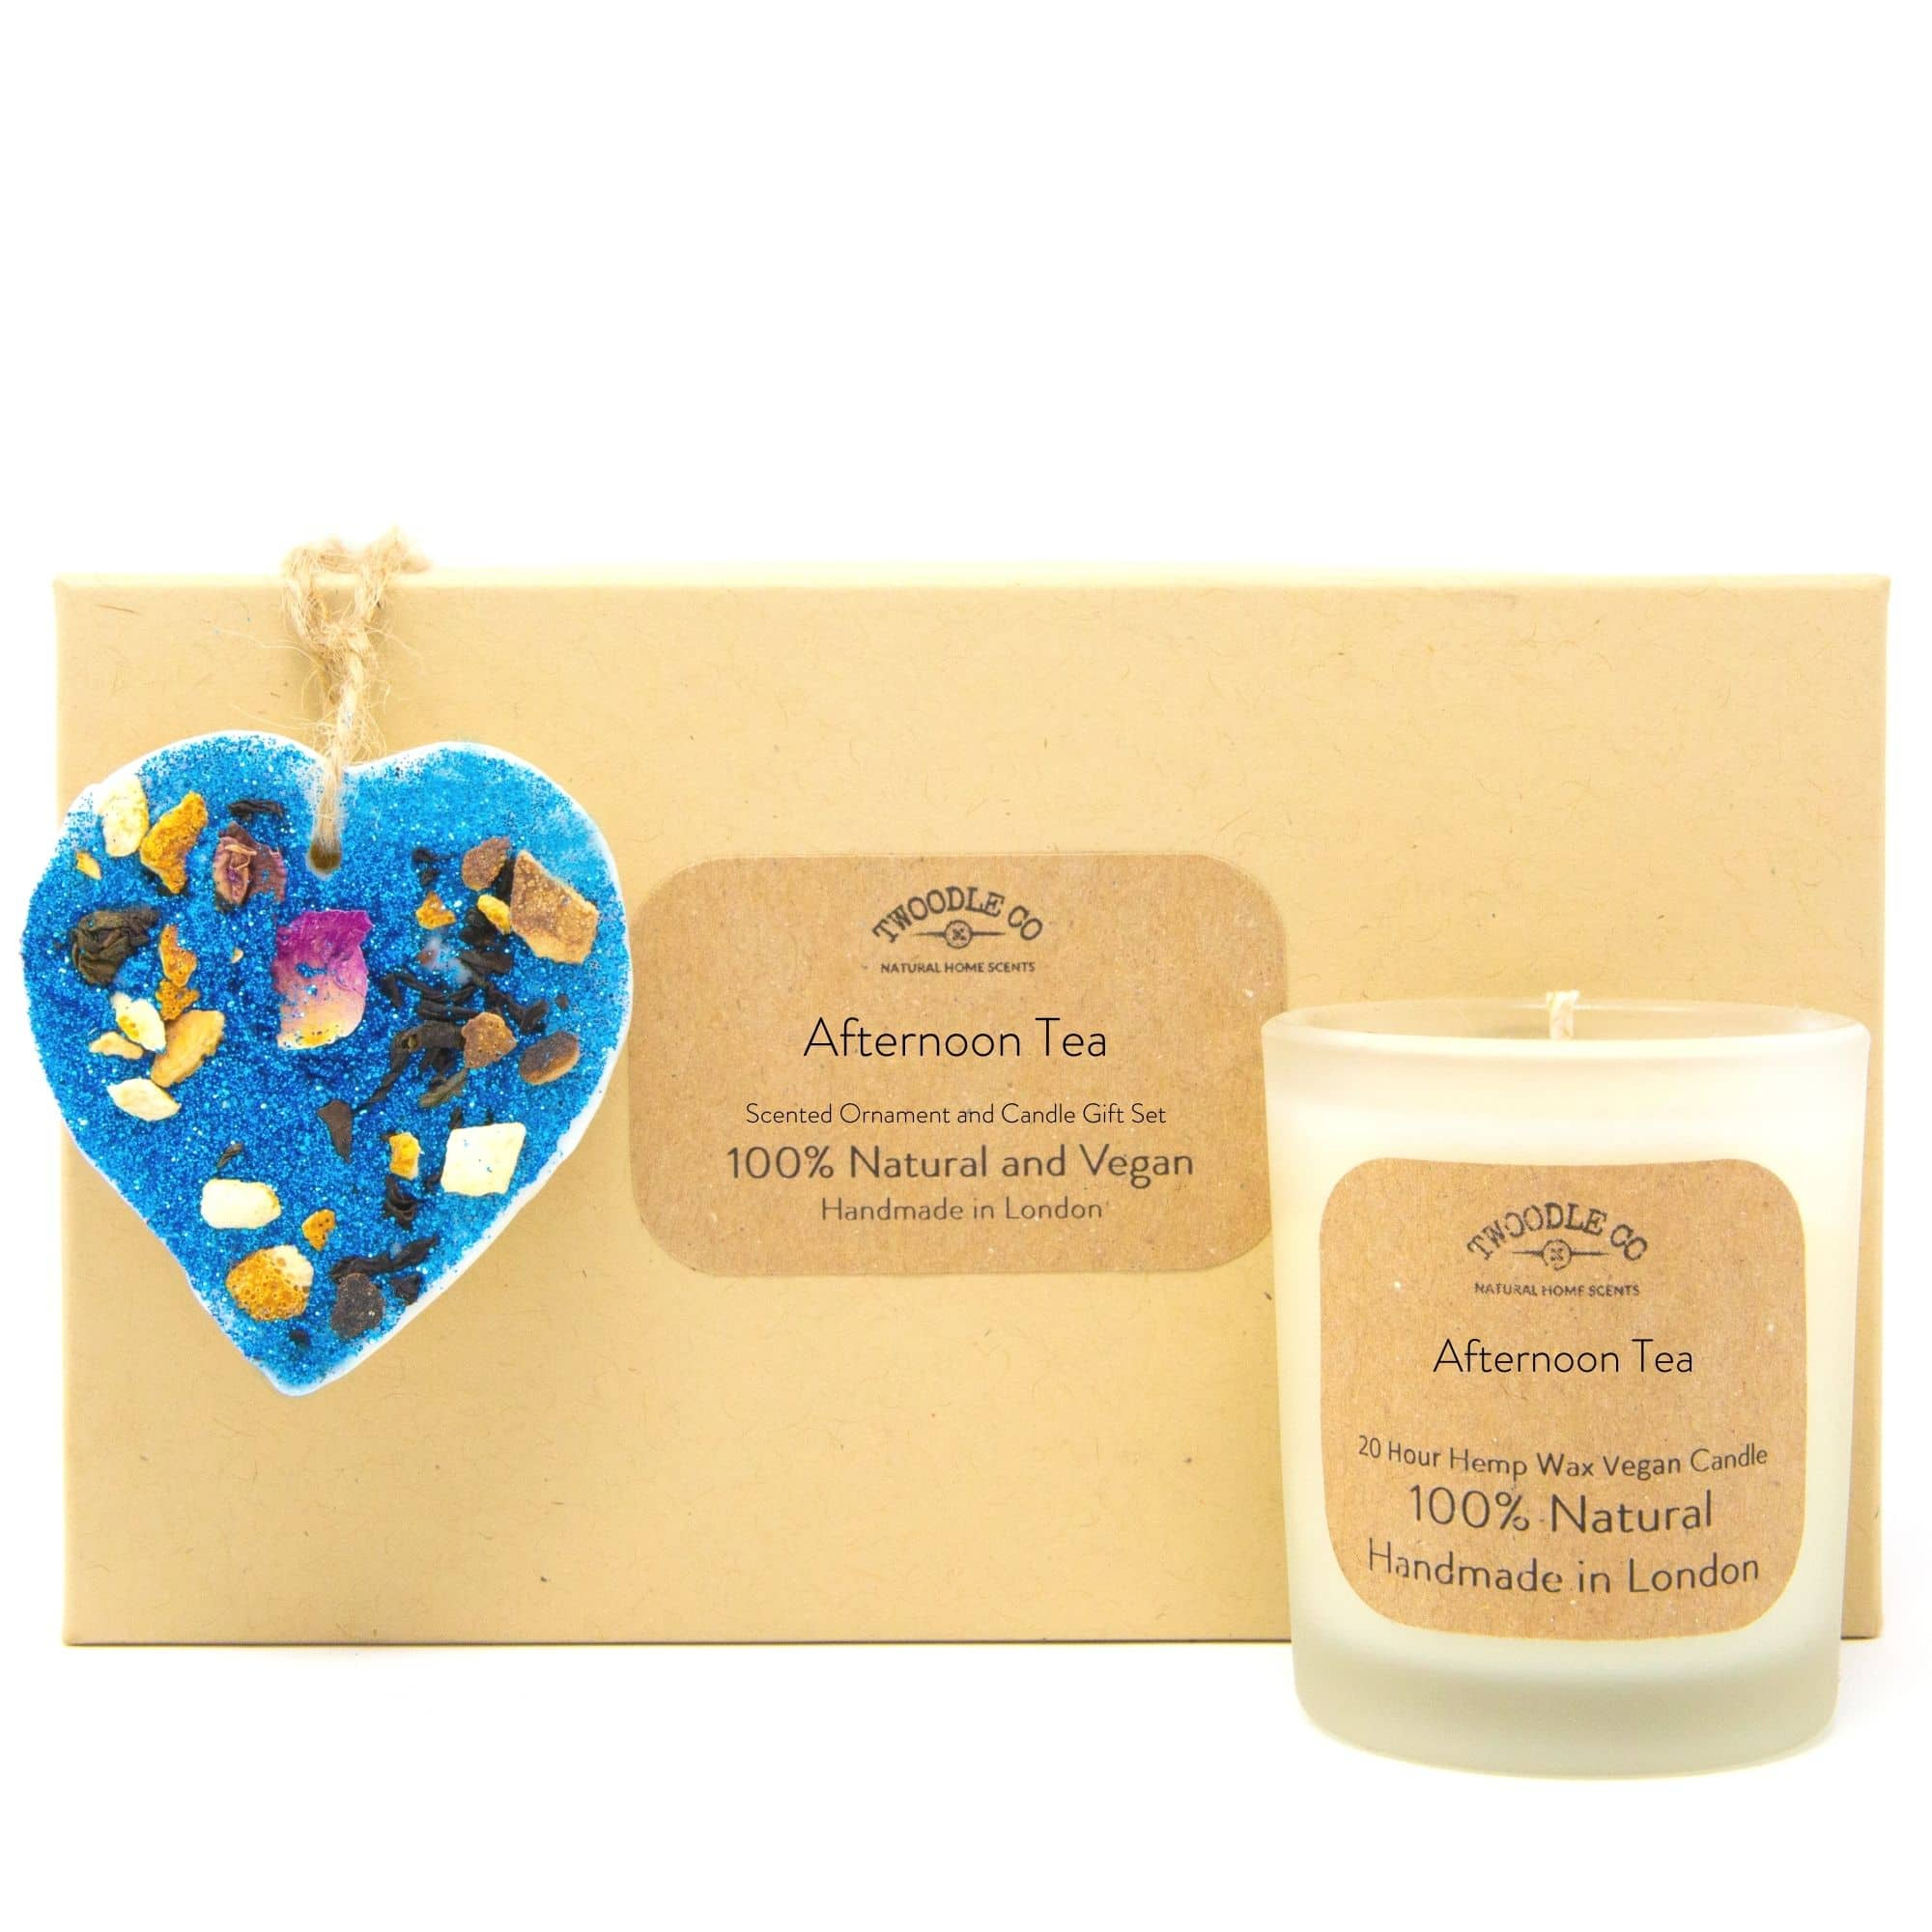 Afternoon Tea | Scented Ornament and Candle Gift Set